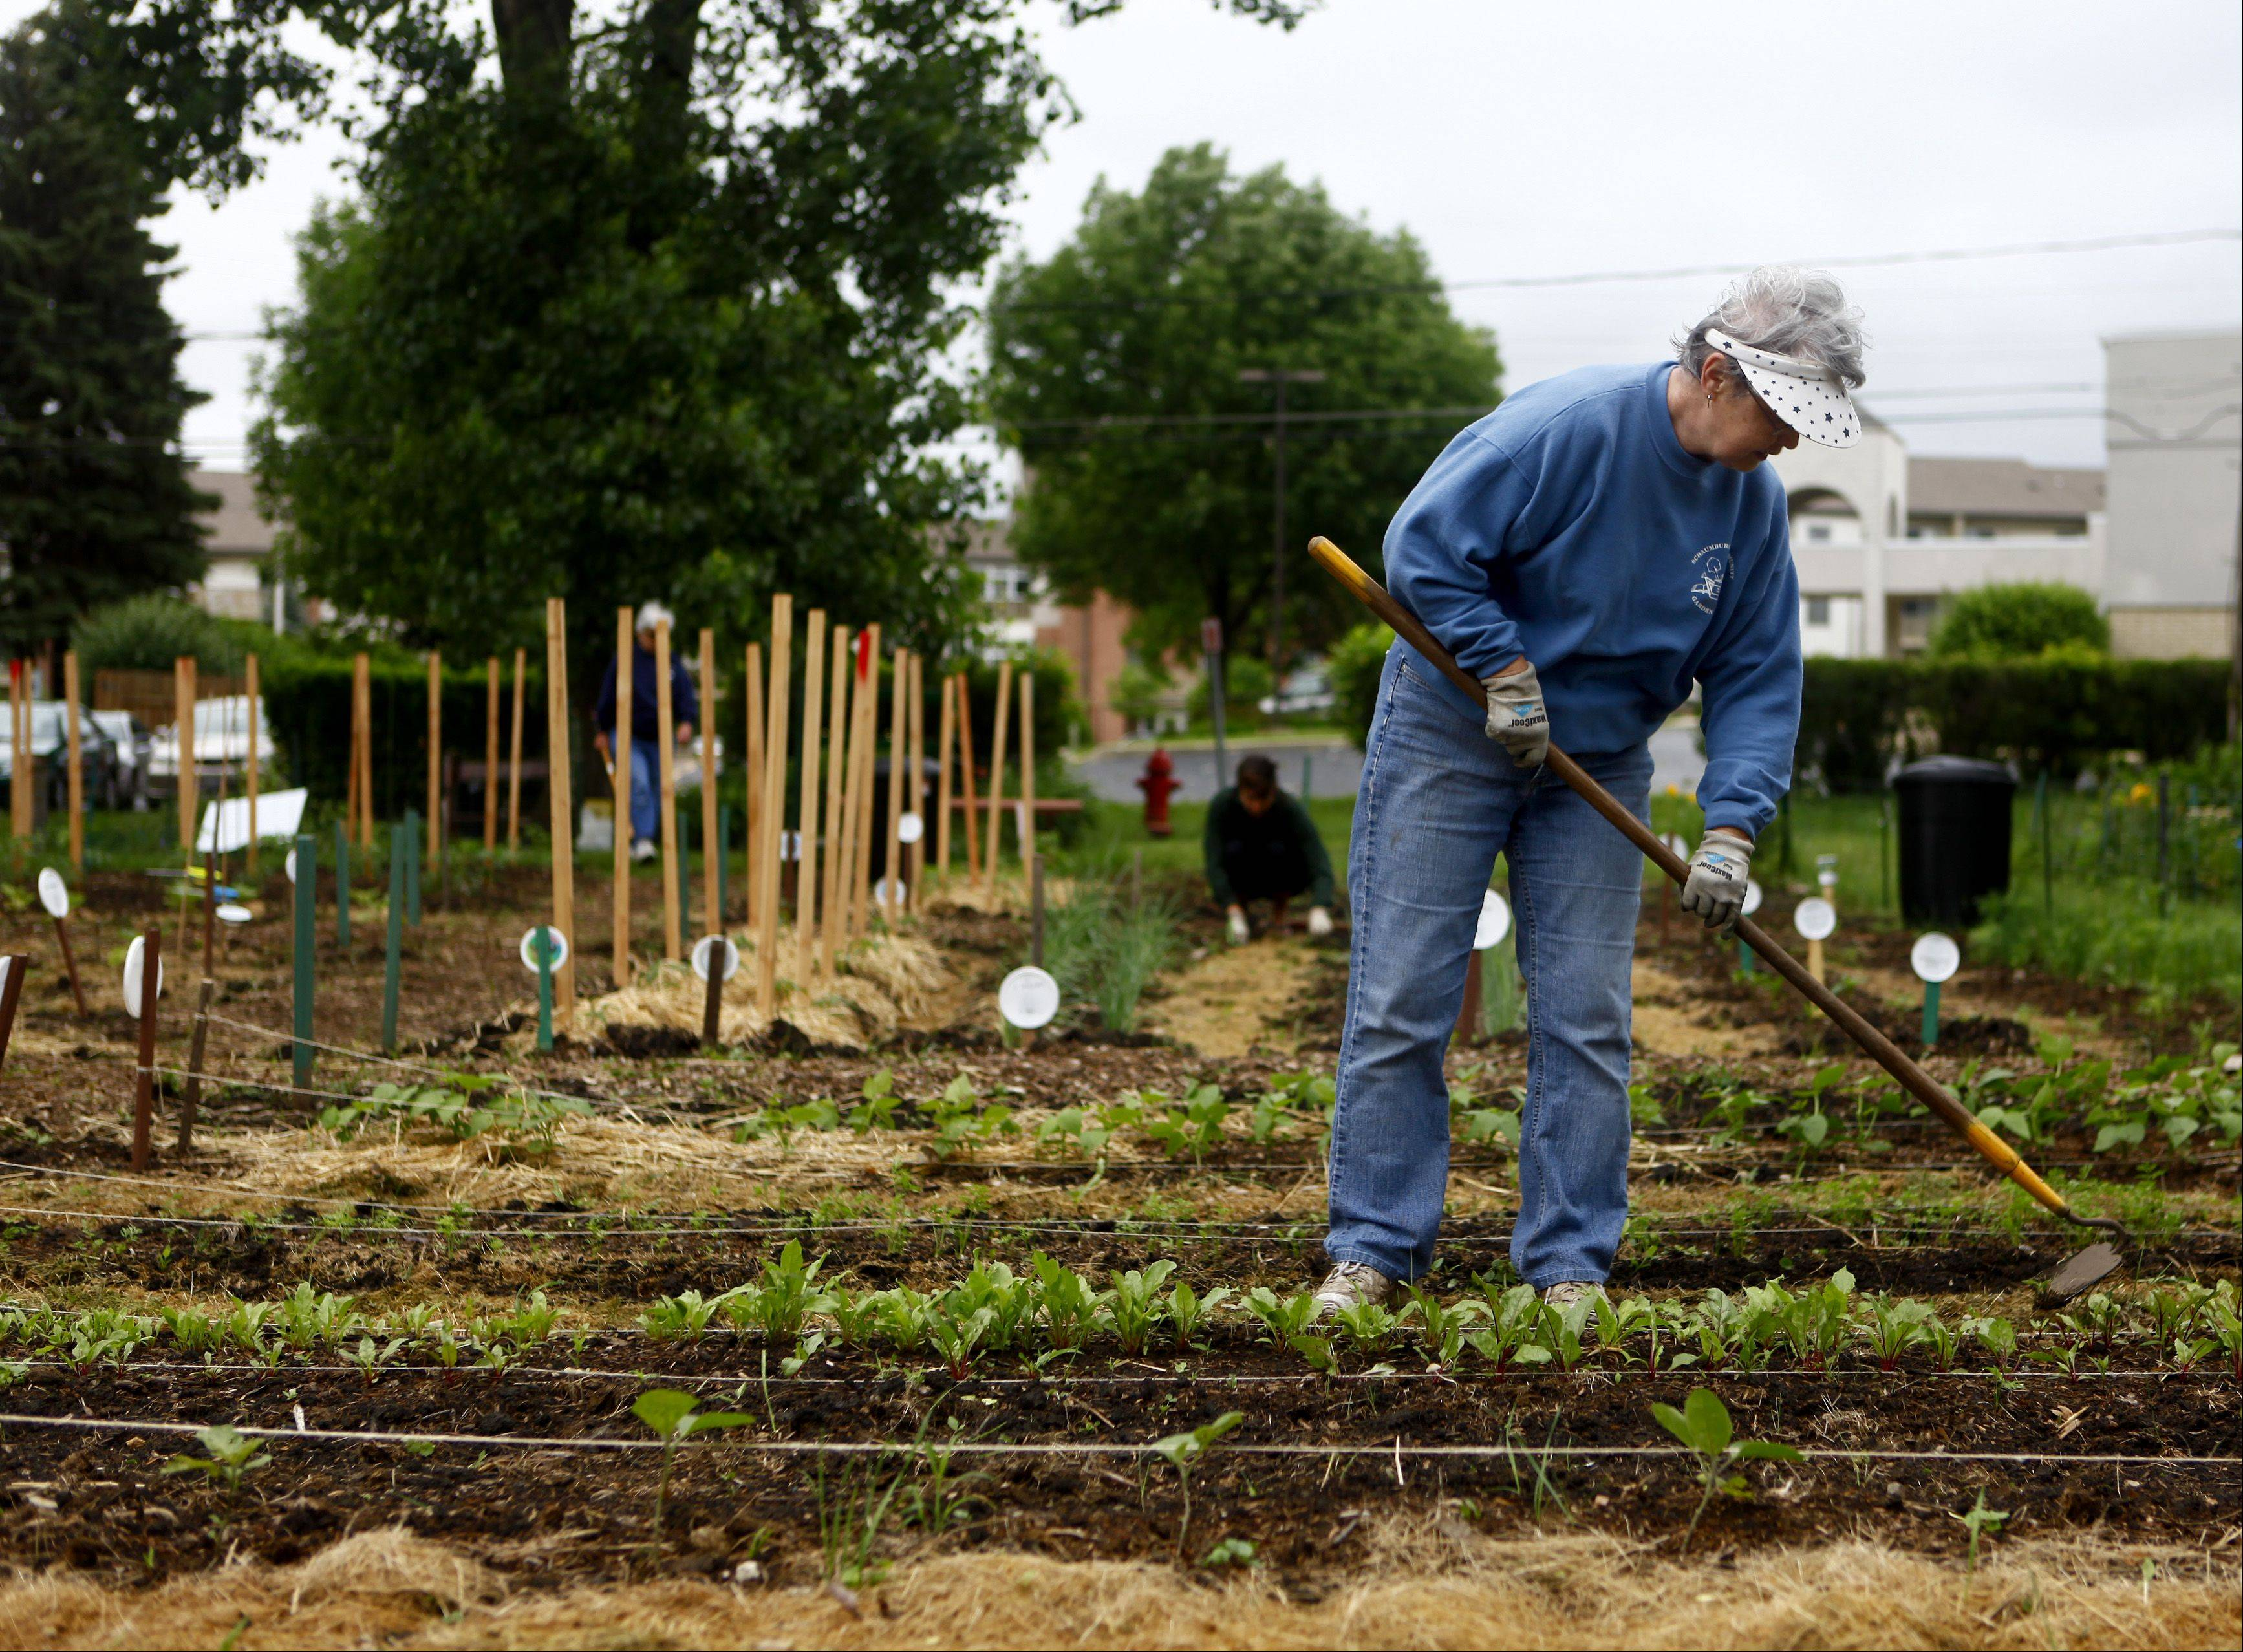 Community gardeners grow fresh produce for local food pantry